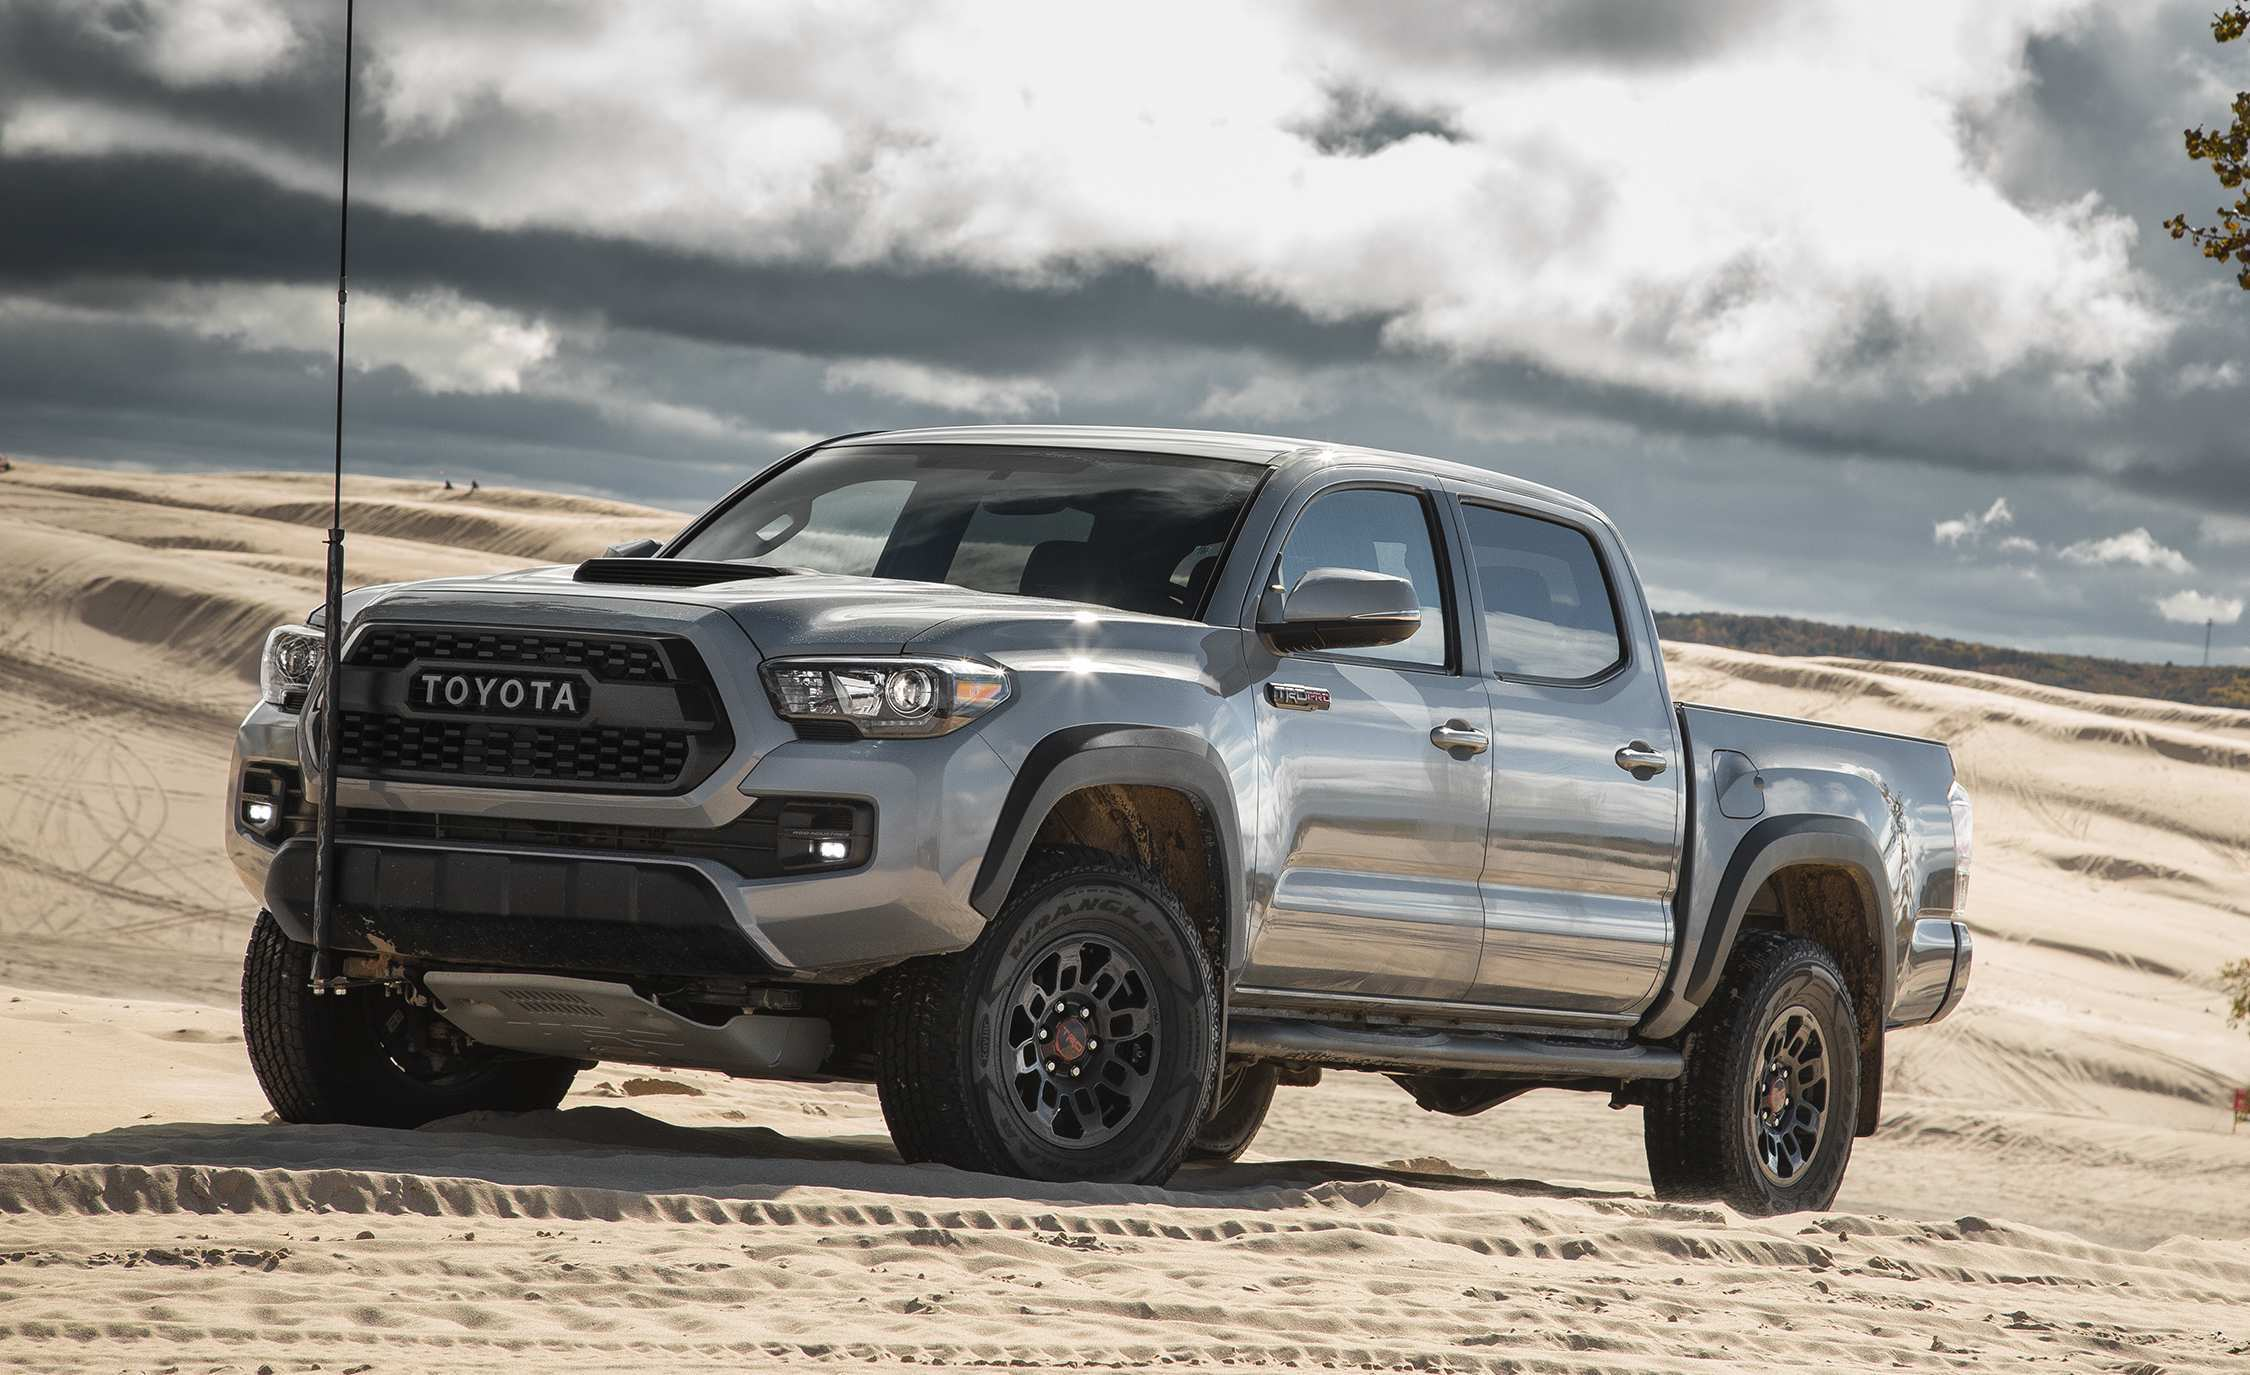 35 Gallery of 2019 Toyota Tacoma Engine Pictures with 2019 Toyota Tacoma Engine